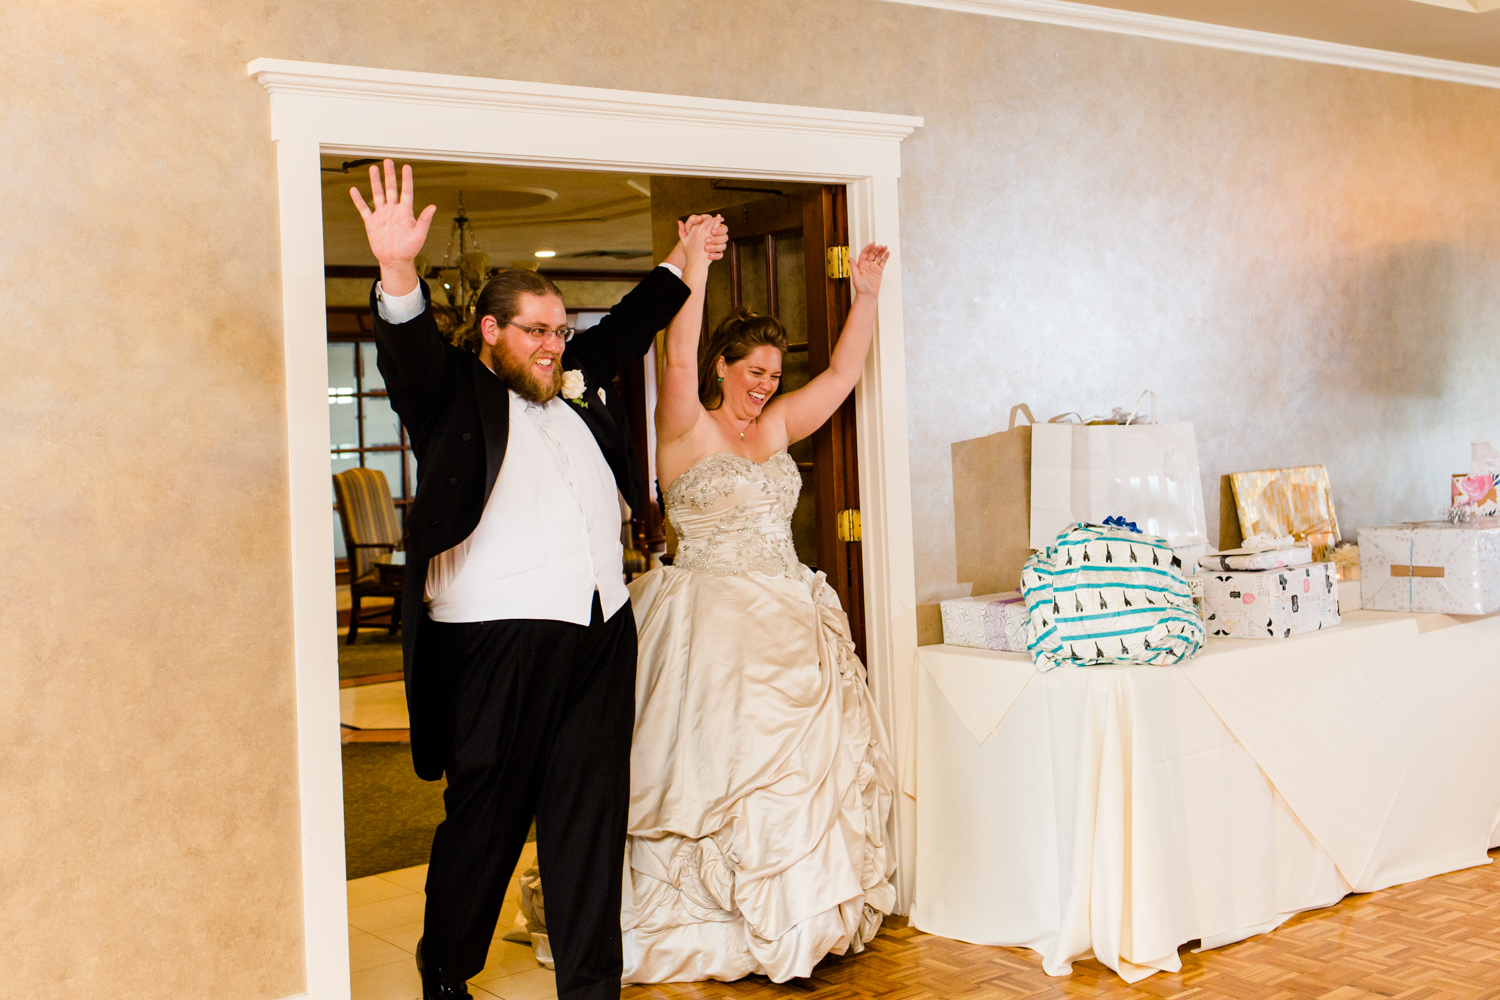 Bride and groom enter their reception hall for the first time as husband and wife. They are at Lakeshore Yacht and Country Club in Cicero, NY.